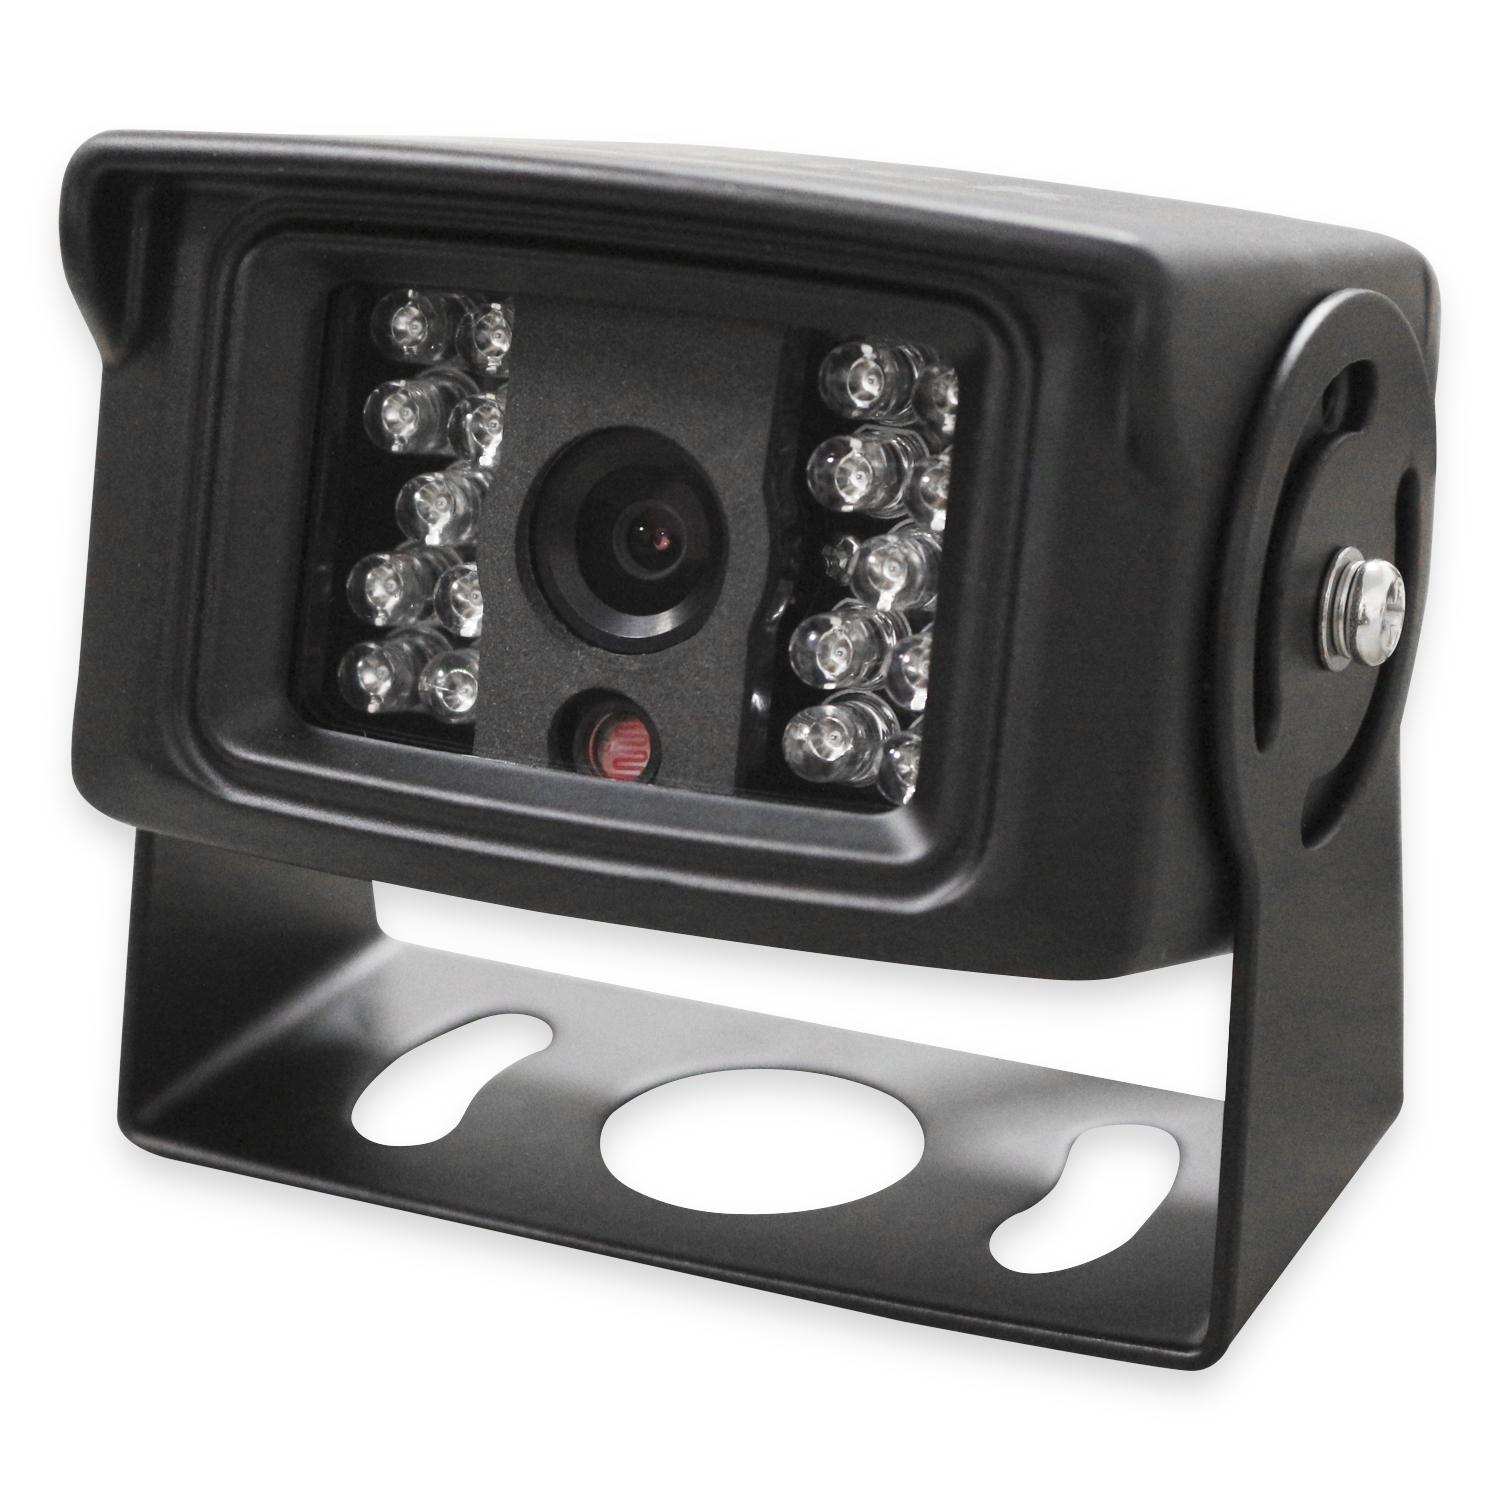 Rear View Camera with optical SONY CCD and GO for machinery, trucks or shuttle buses